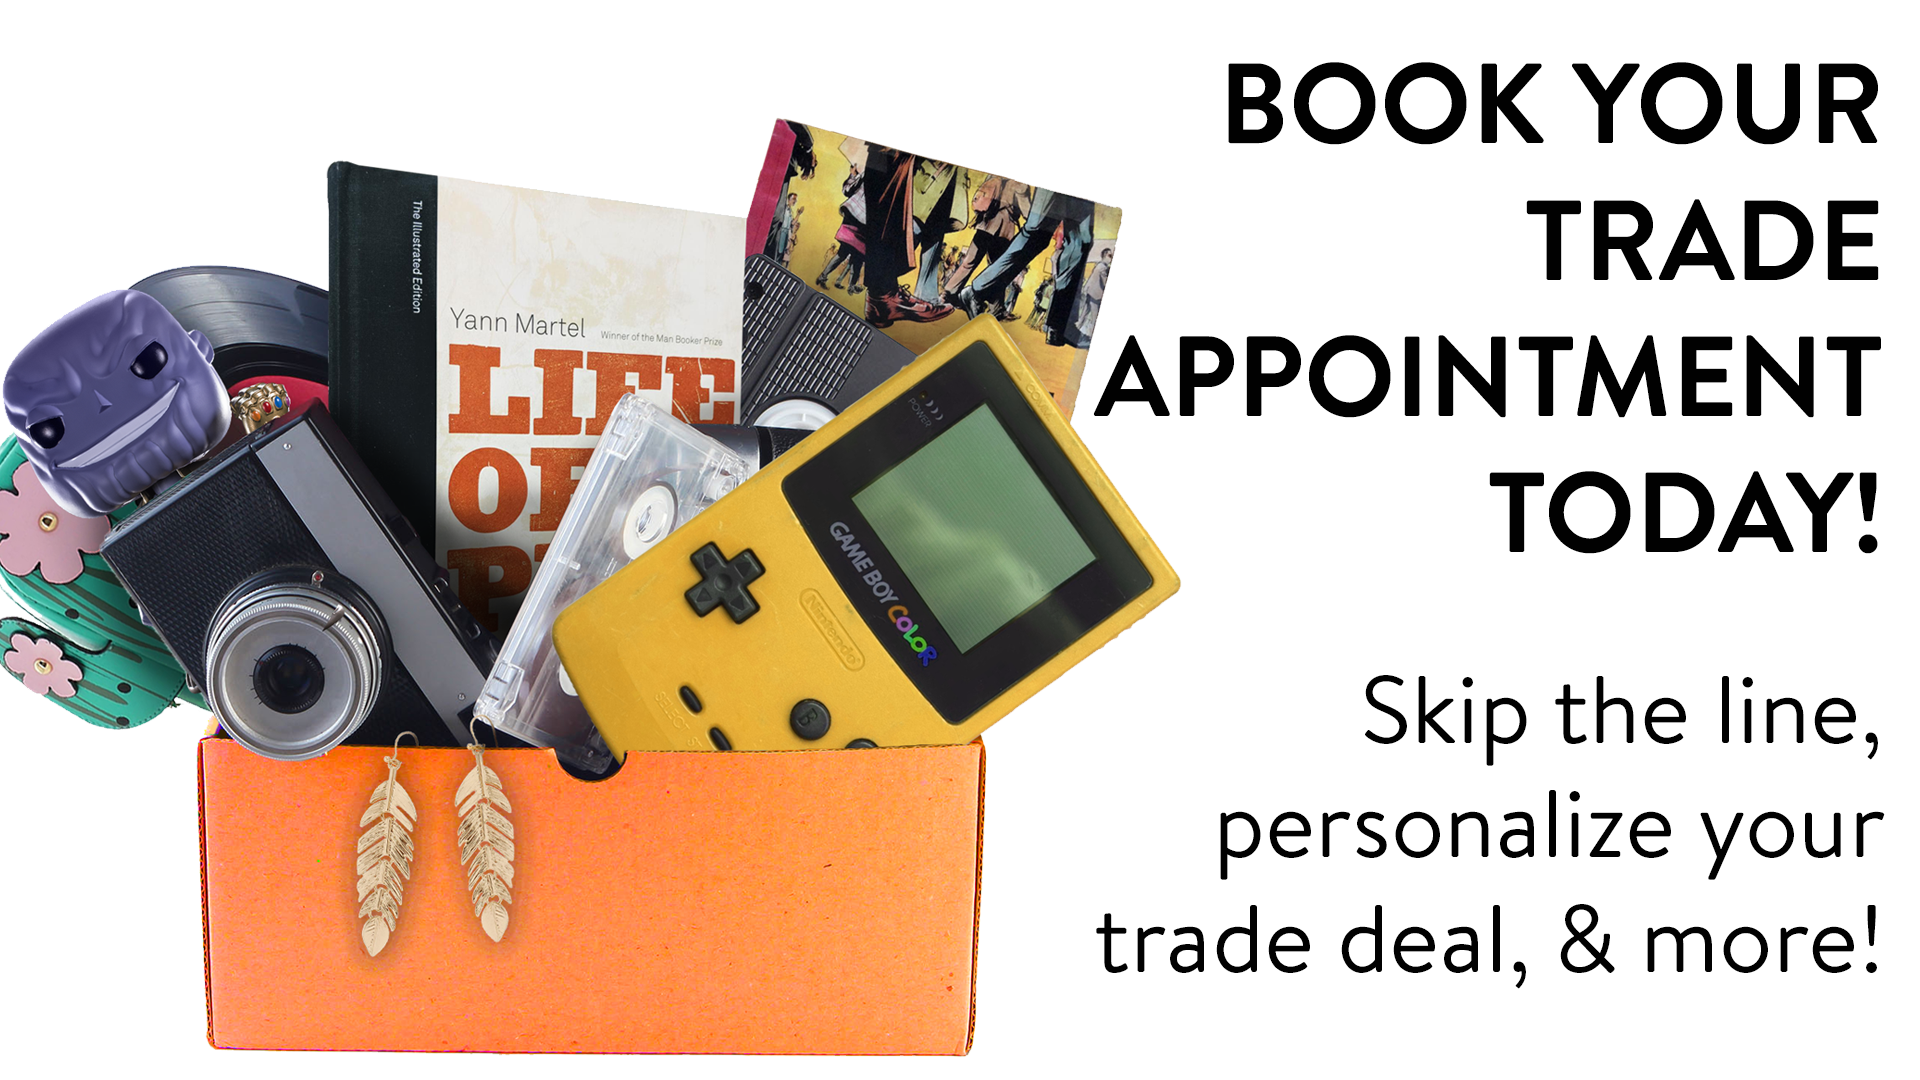 book your trade appointment